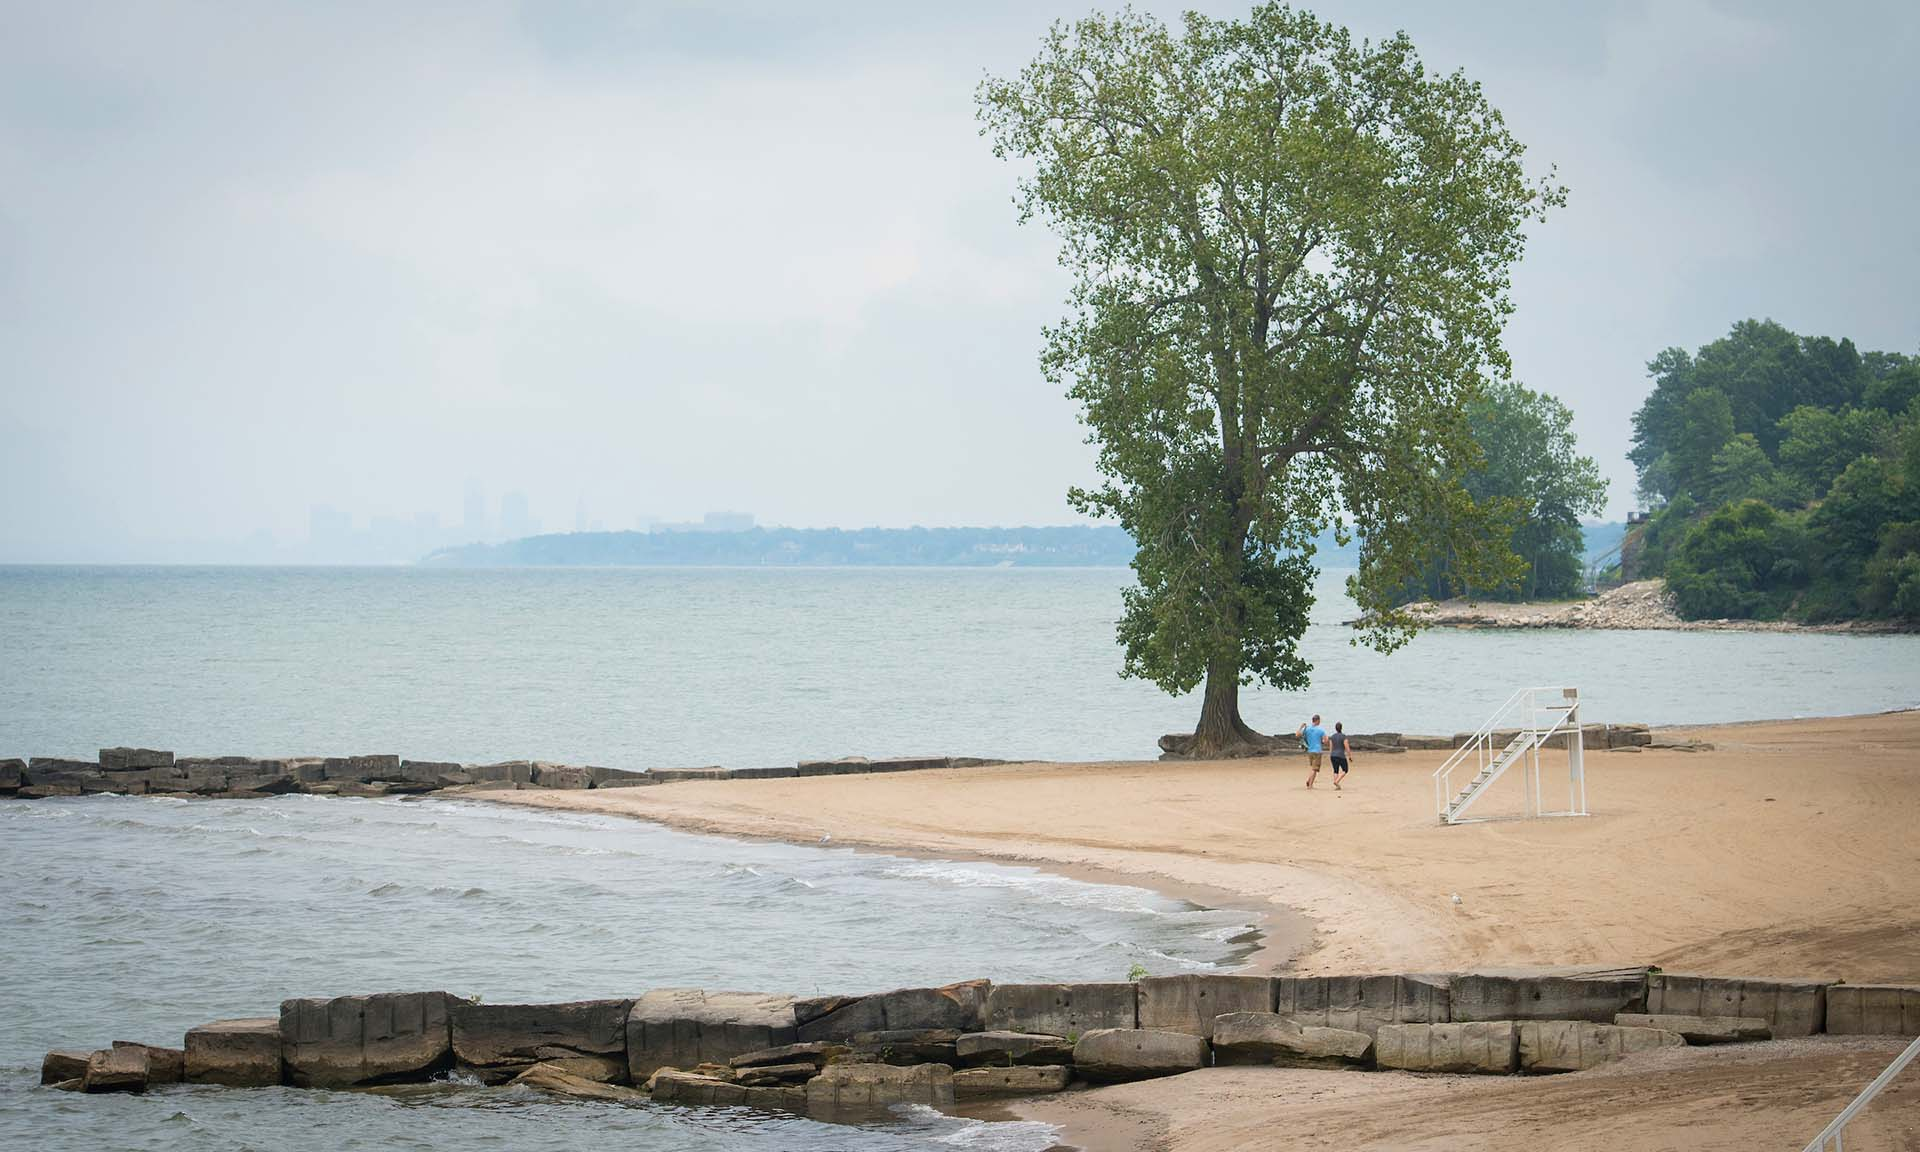 View of Huntington Reservation Sandy Beach on Lake Erie